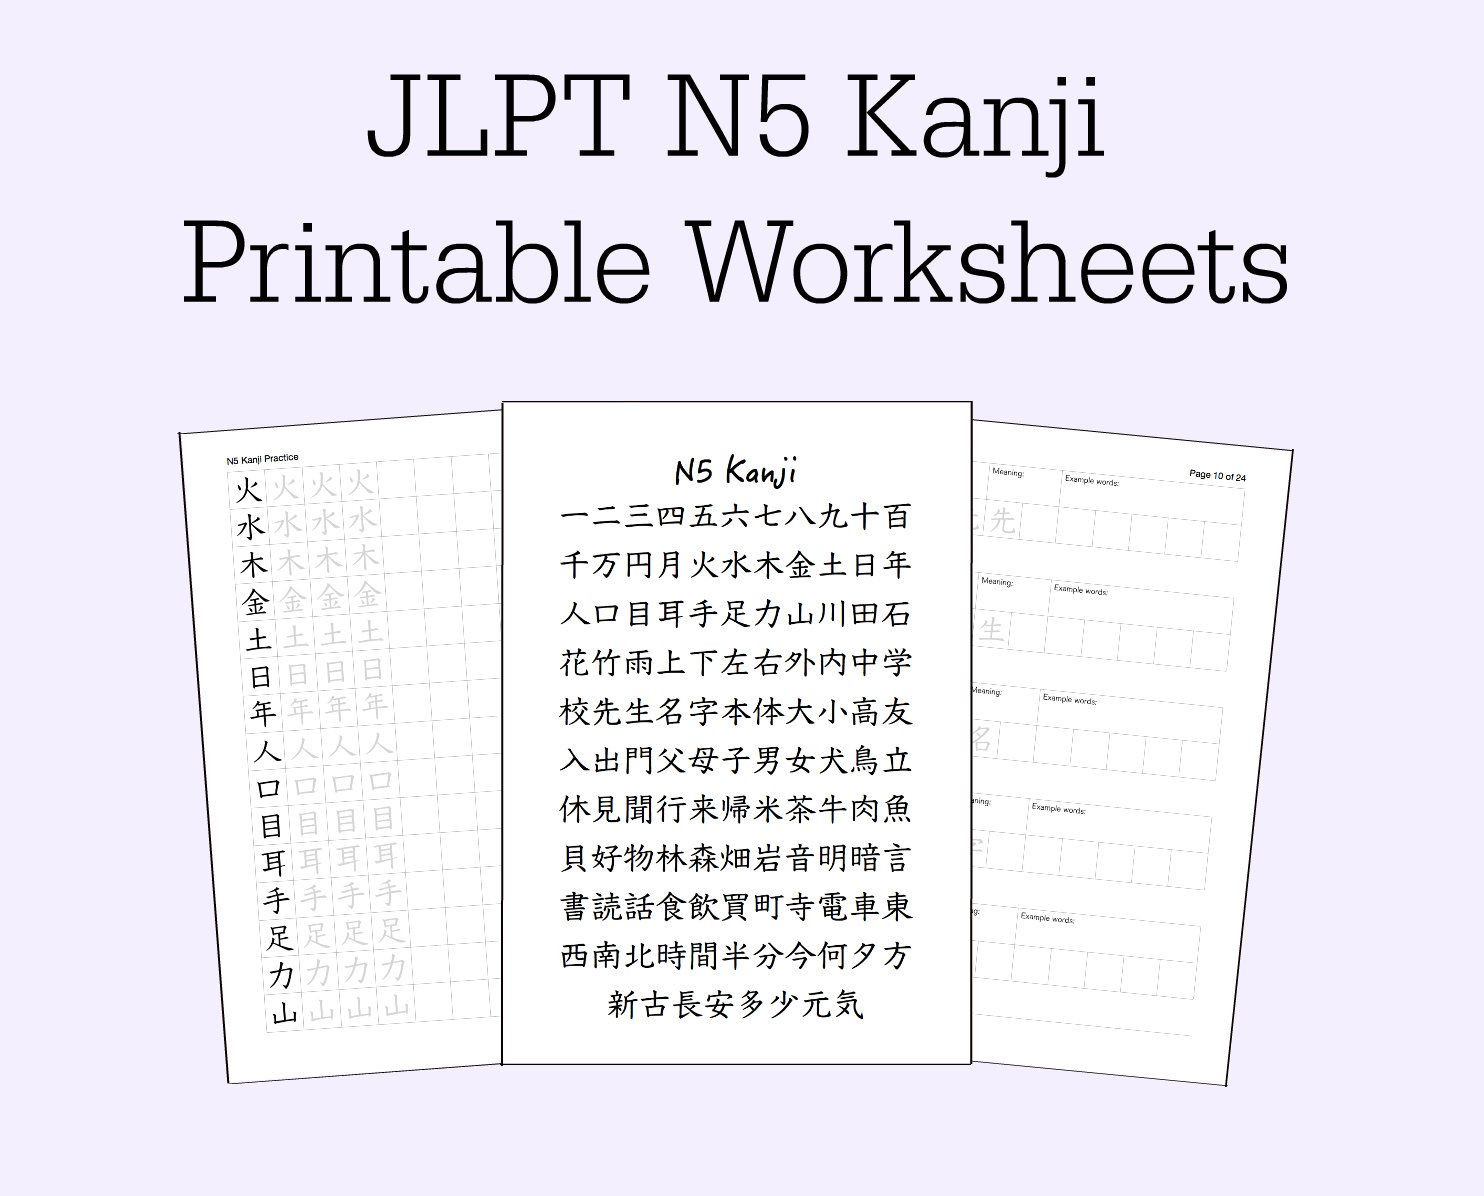 Japanese Worksheets for Beginners Printable Jlpt N5 Kanji Printable Practice Worksheet Set Download